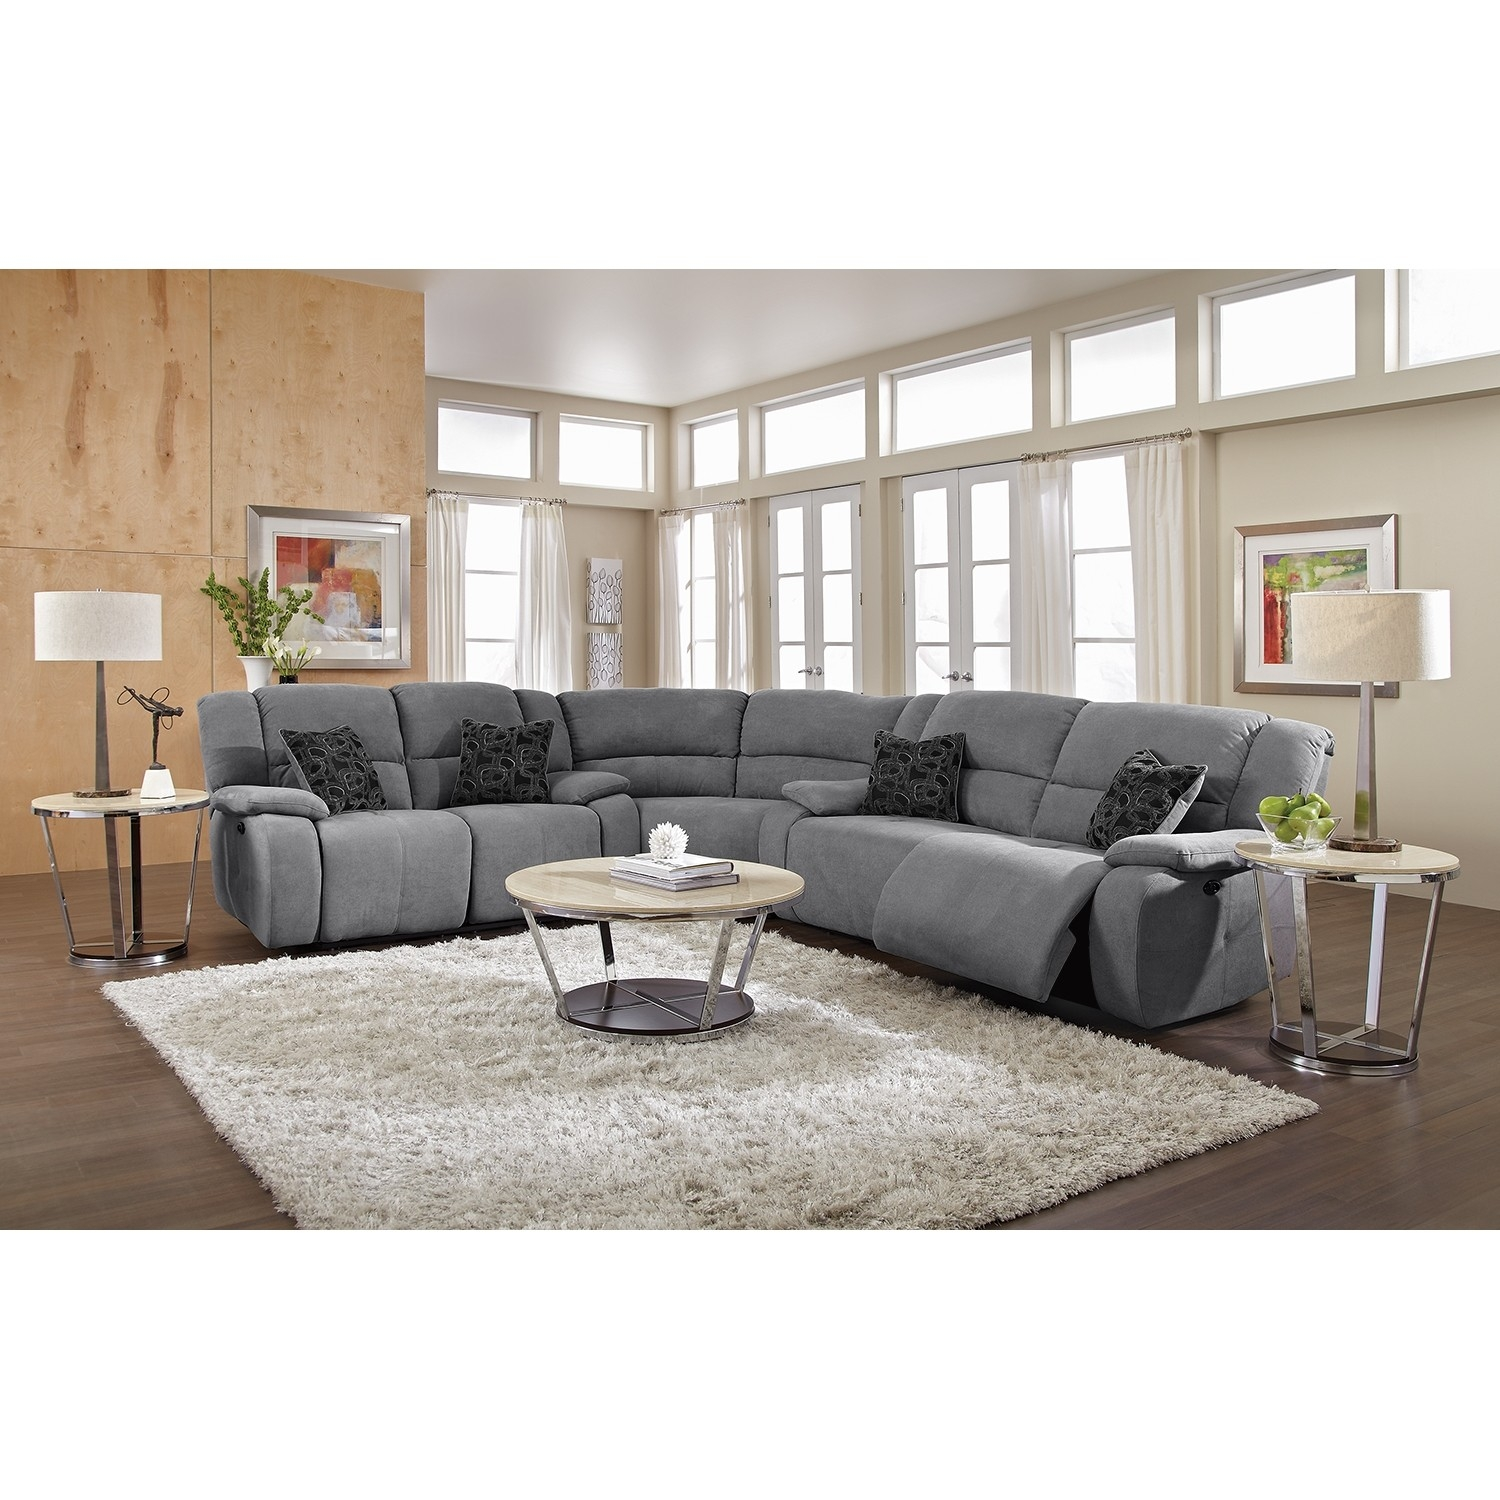 Sofas Center Fascinating Curved Reclining Sofa Photo Design With Regard To Curved Recliner Sofa (Image 14 of 15)